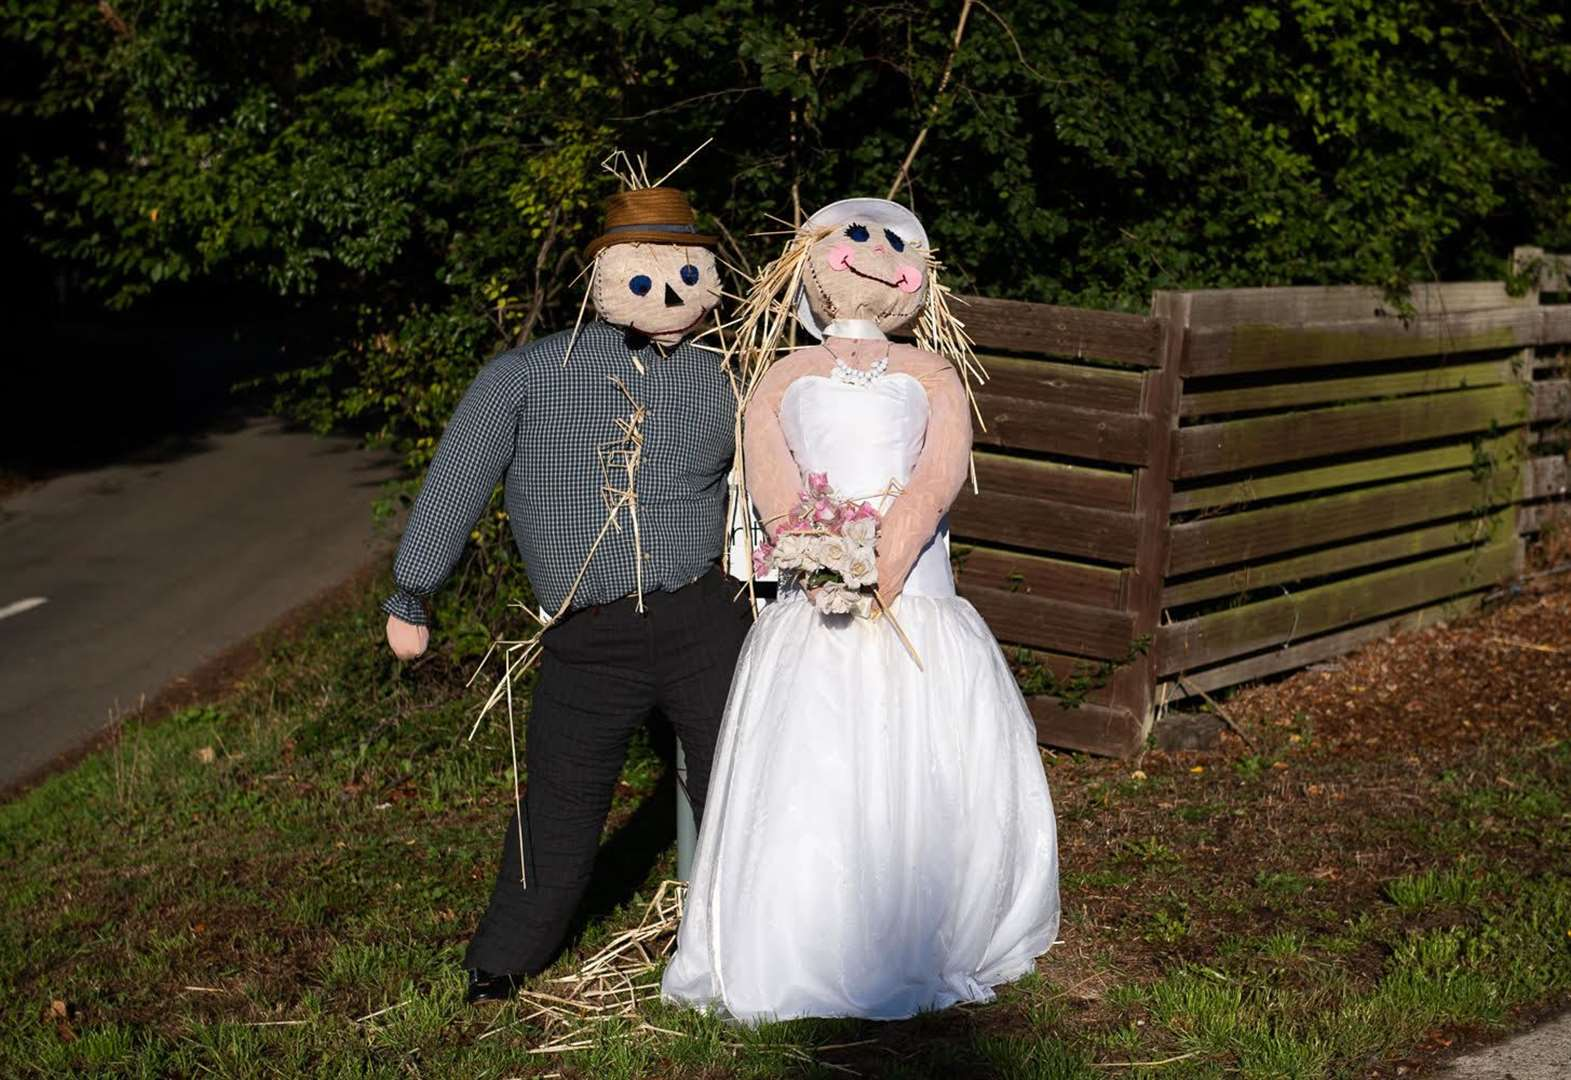 High Wych's annual scarecrow trail to return